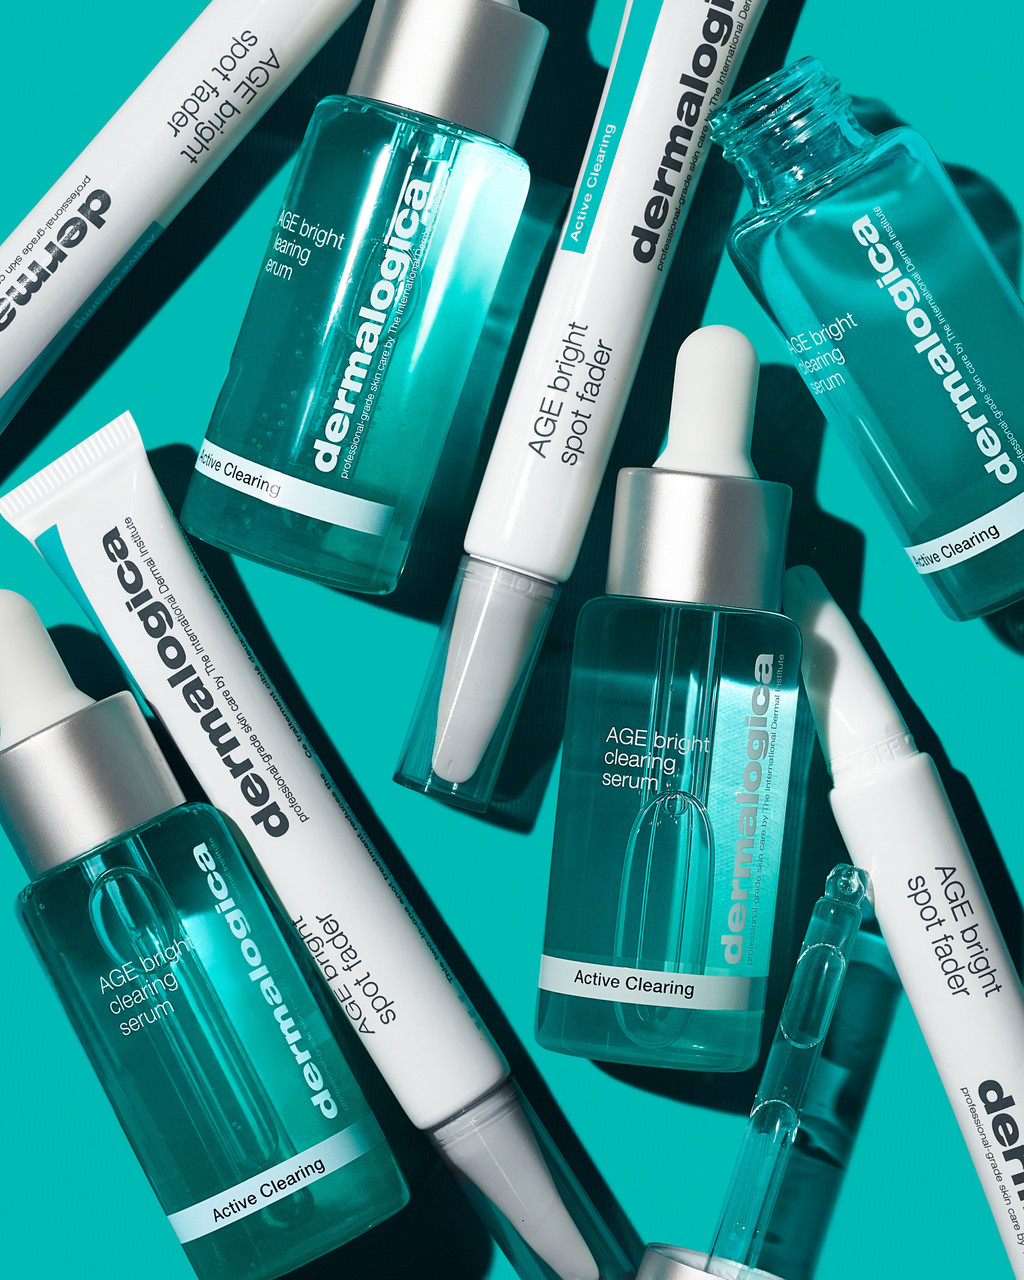 Dermalogica launches NEW active clearing products